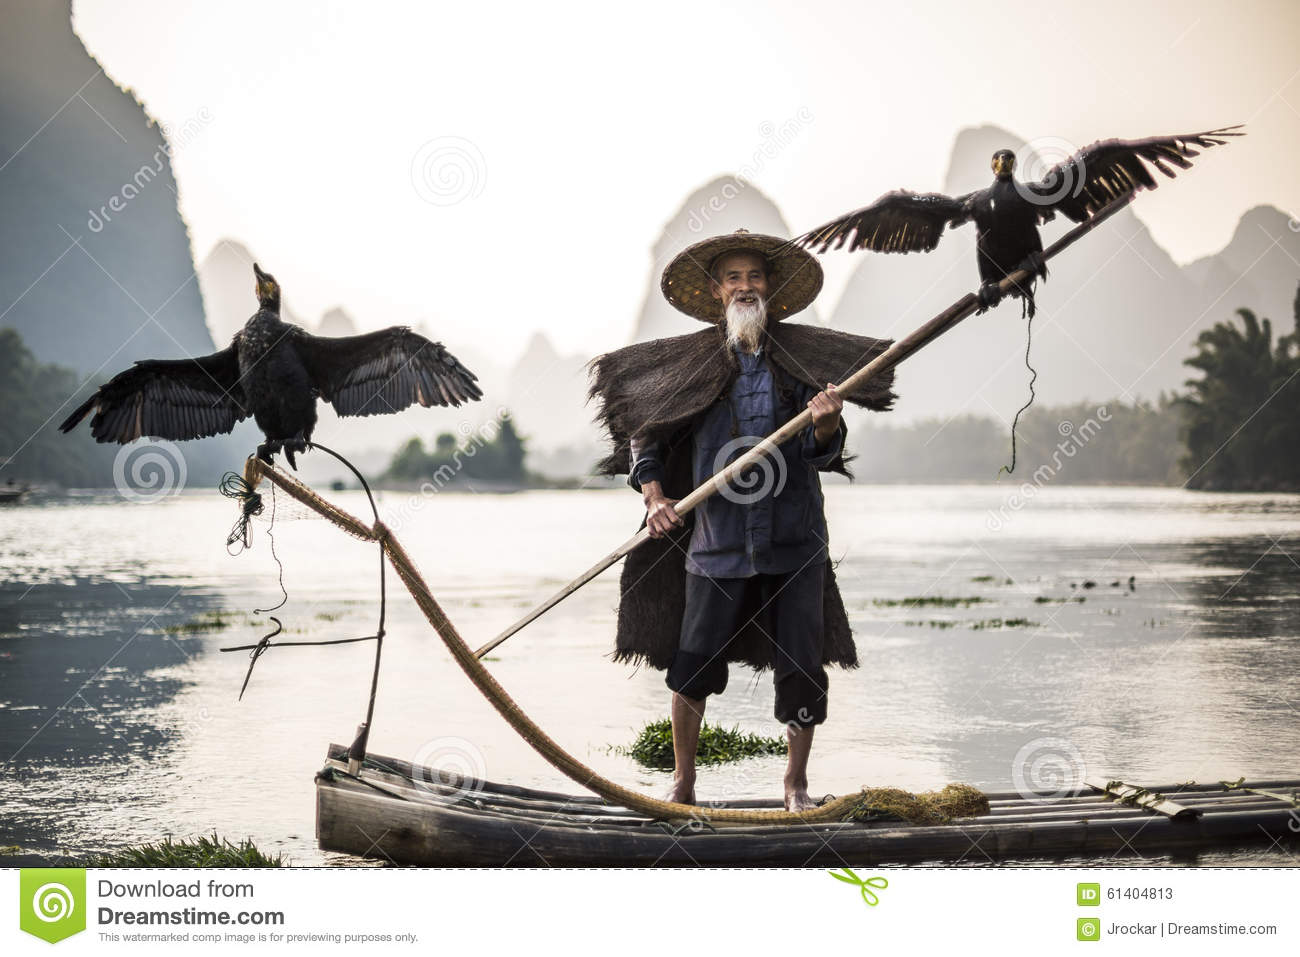 Cormorant fisherman showing birds